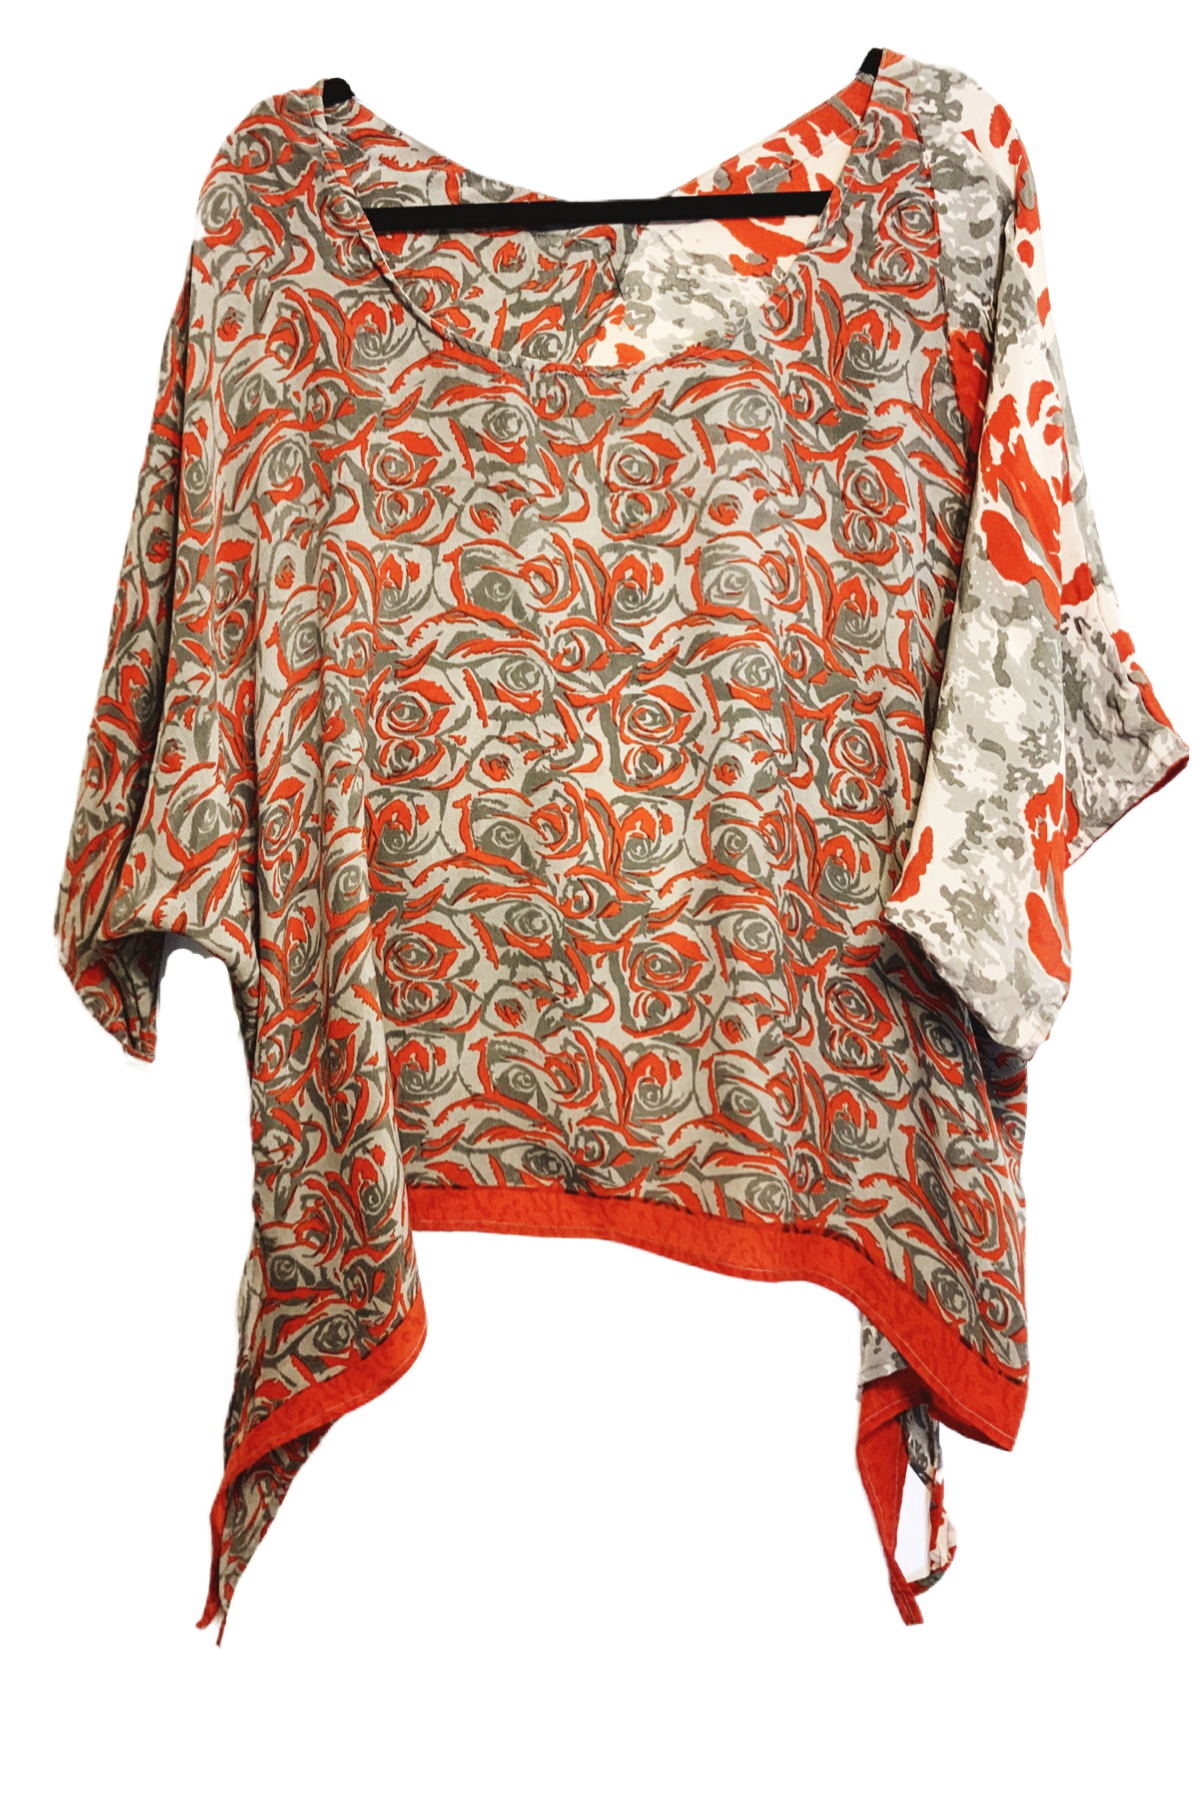 Diana Pure Silk Oversized Shirt with Side Ties - sariKNOTsari slow fashion bryn walker linen Hamilton sustainable fashion gifts sari not sari Hamilton Fair trade  Ethical  Artisan made  Zero waste  Up-cycled Slow Fashion  Handmade  GTA Toronto Copper Pure Upcycled vintage silk handmade recycled recycle copper pure silk travel clothing hamilton vacation cruisewear resortwear bathing suit bathingsuit vacation etsy silk clothing gifts gift dress top pants linen bryn walker alive intentions kaarigar elephants